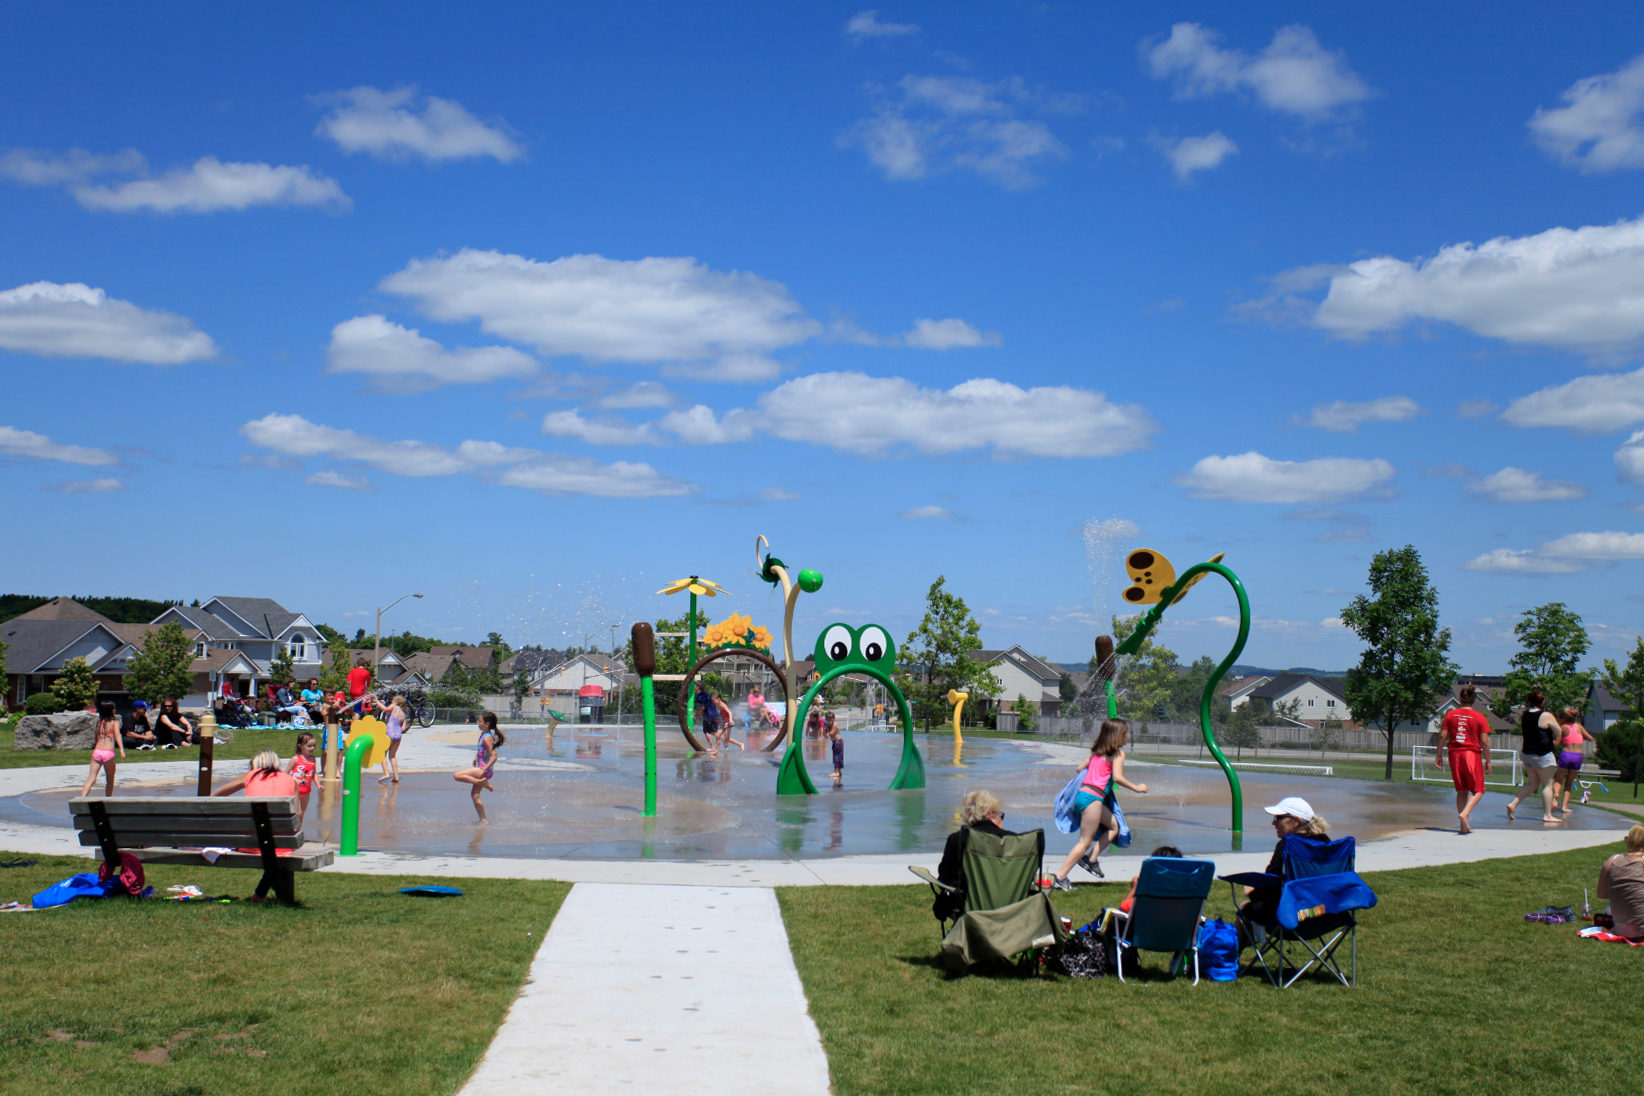 Fendley Park Splash Pad